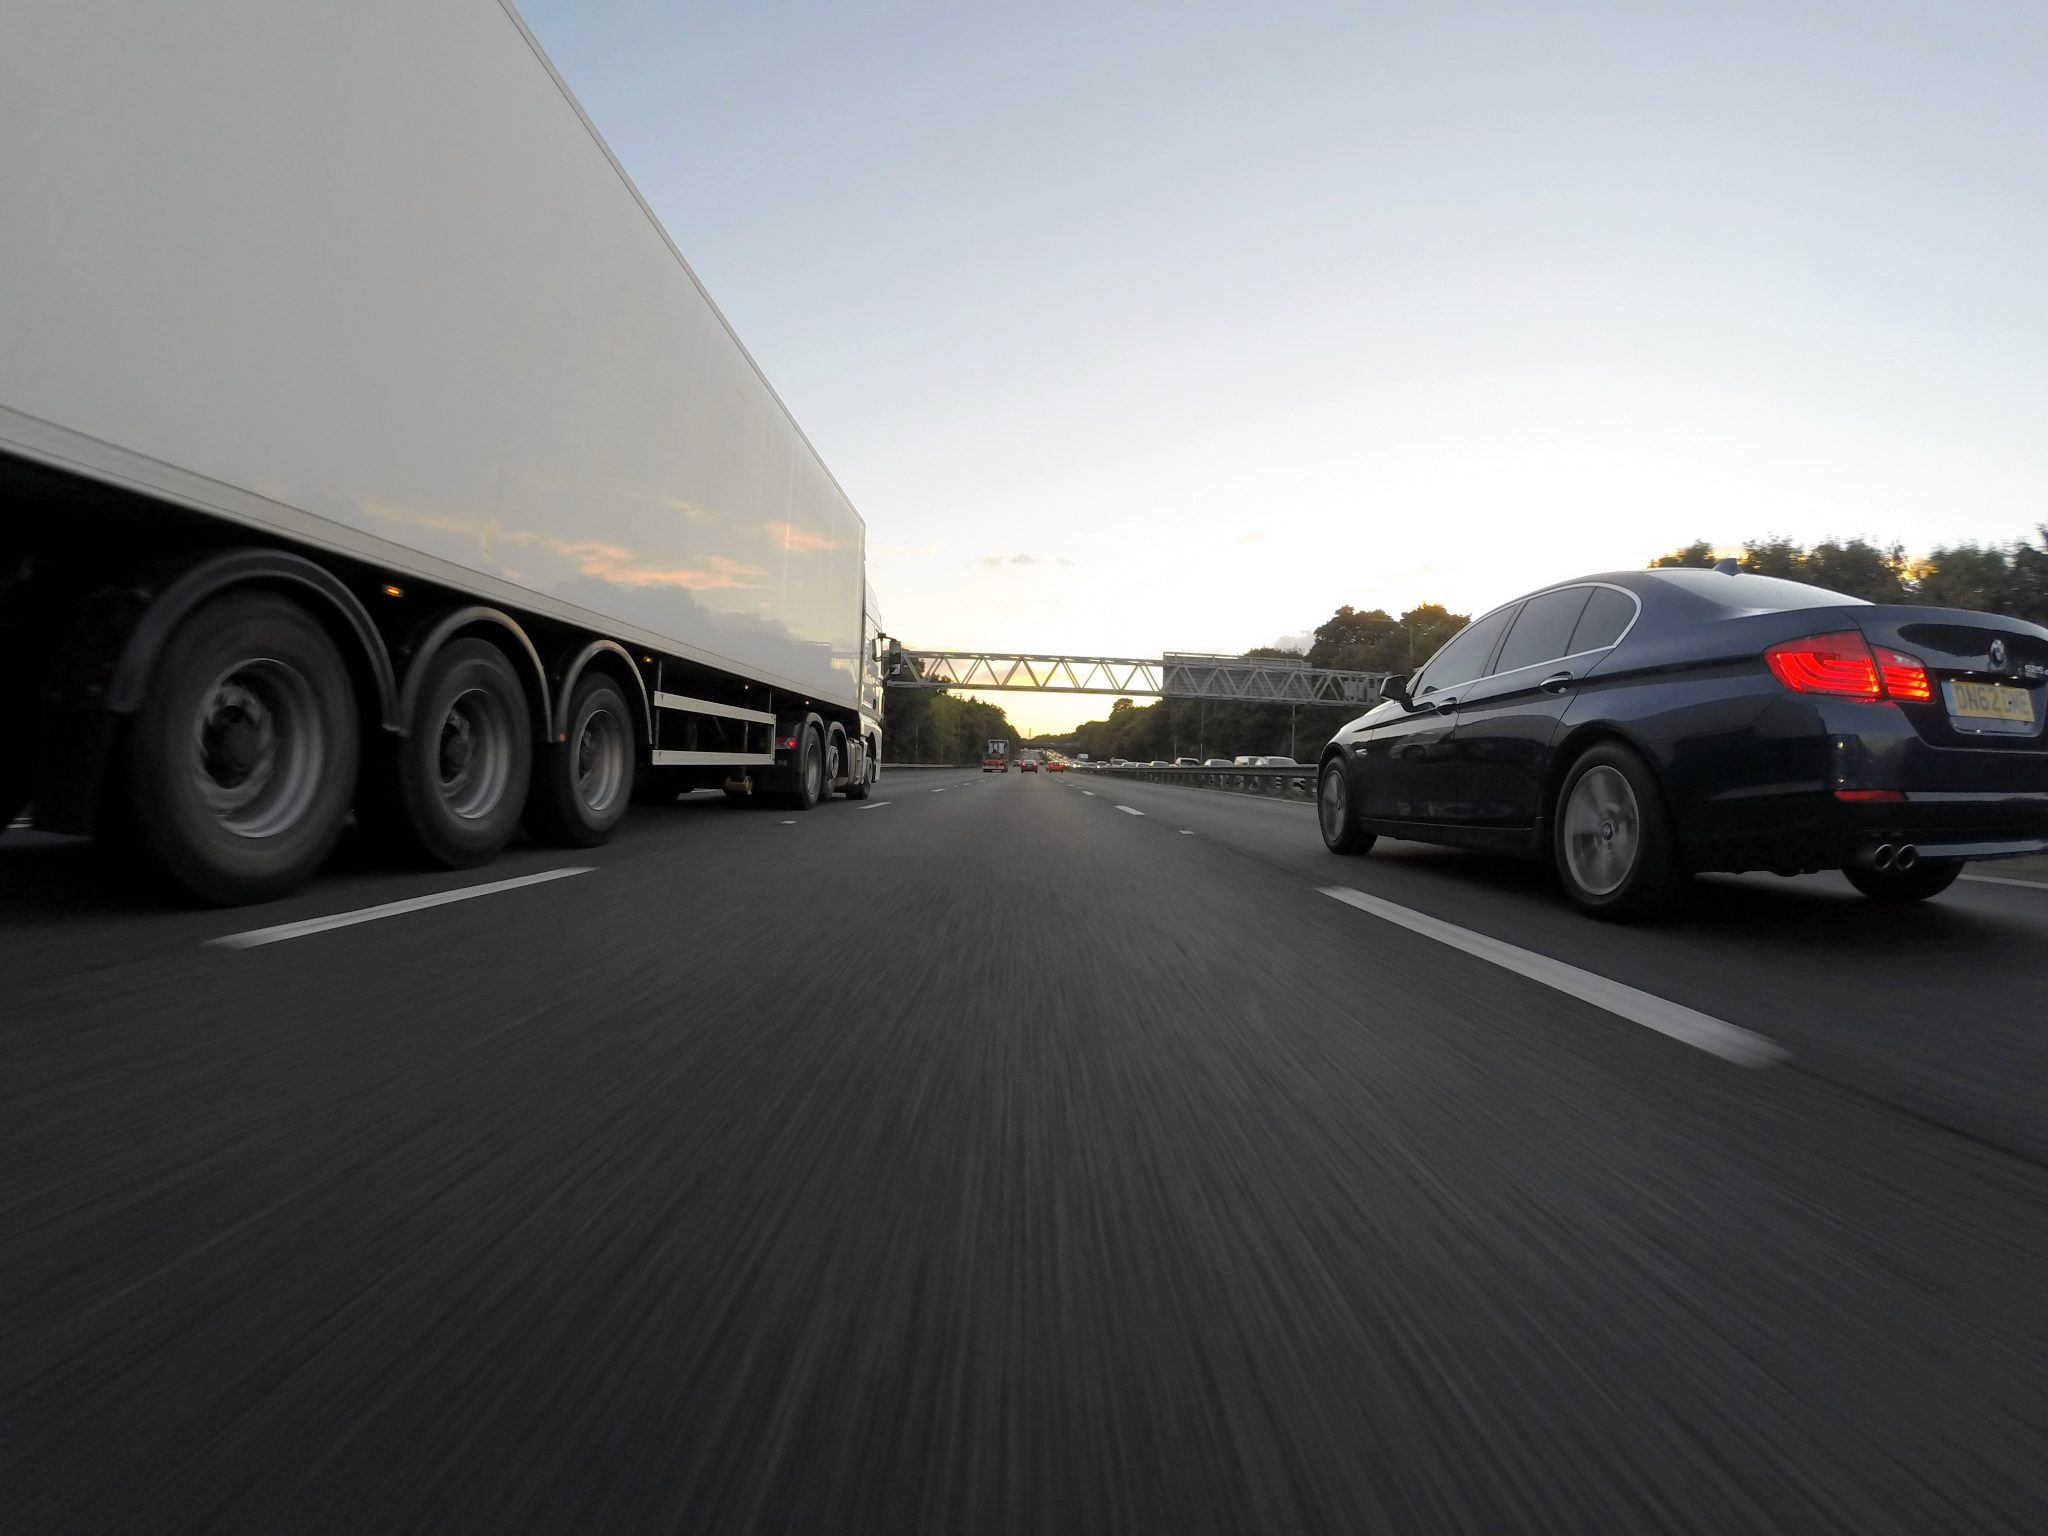 Personal injury lawyers for semi accidents